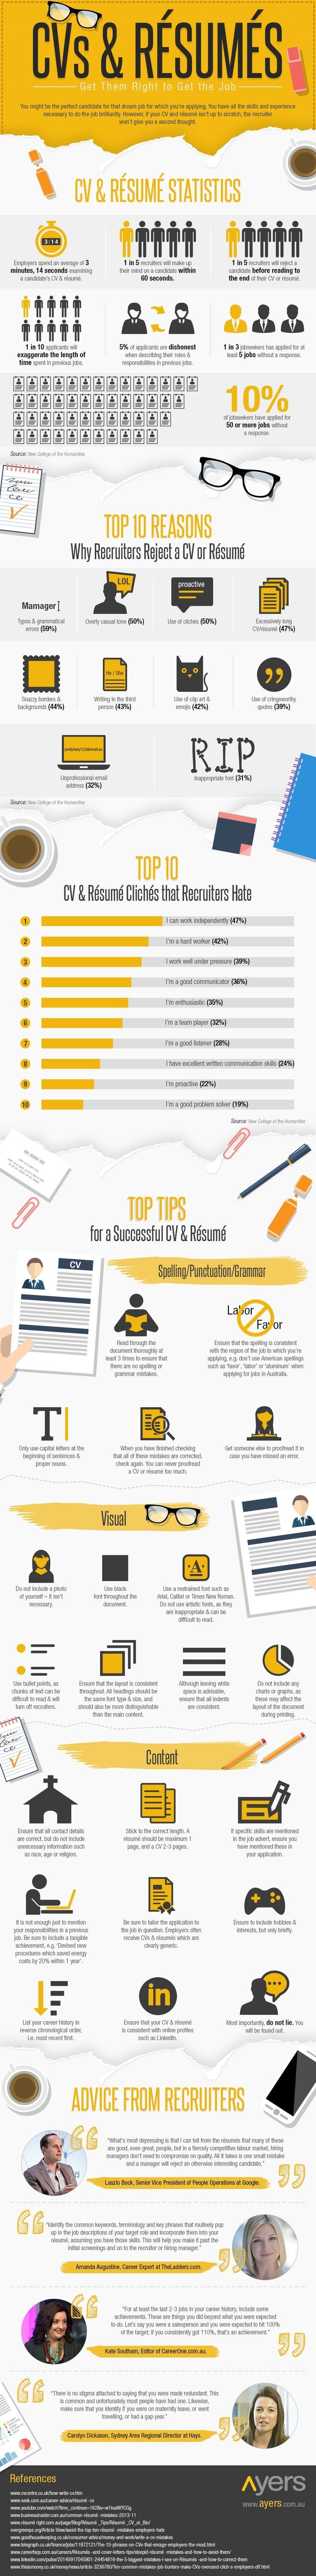 Create The Perfect Resume Inspiration 161 Best Resumes Interviews Images On Pinterest  Job Interviews .